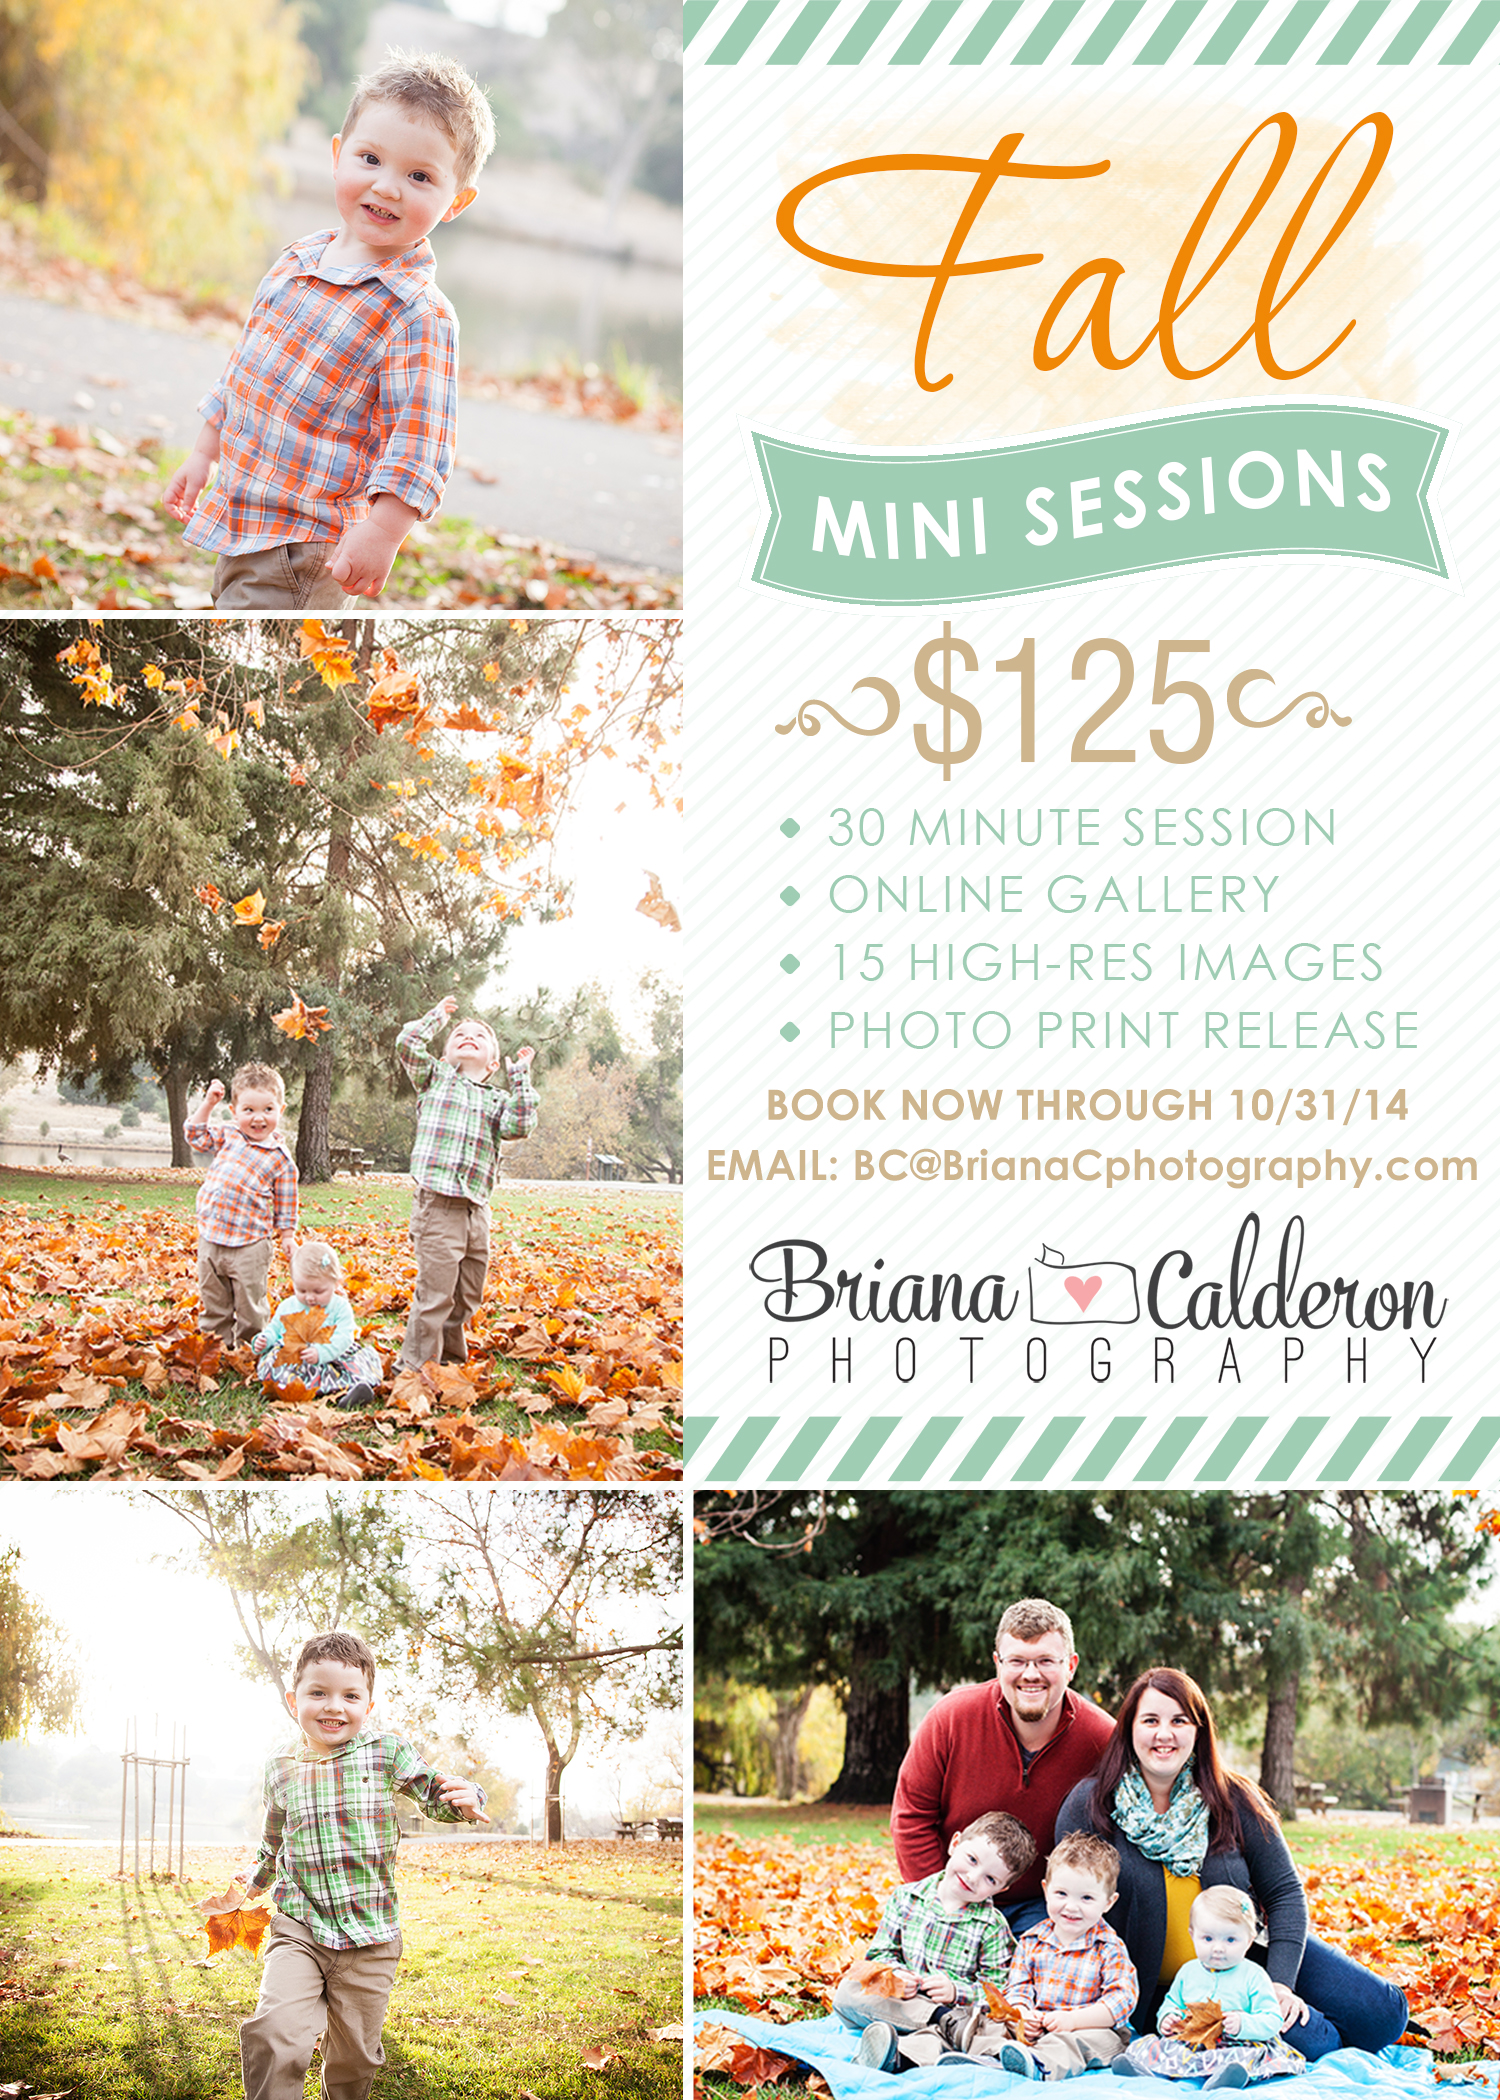 Fall 30 minute mini session for only $125 and includes 15 high-resolution images with a photo print release!